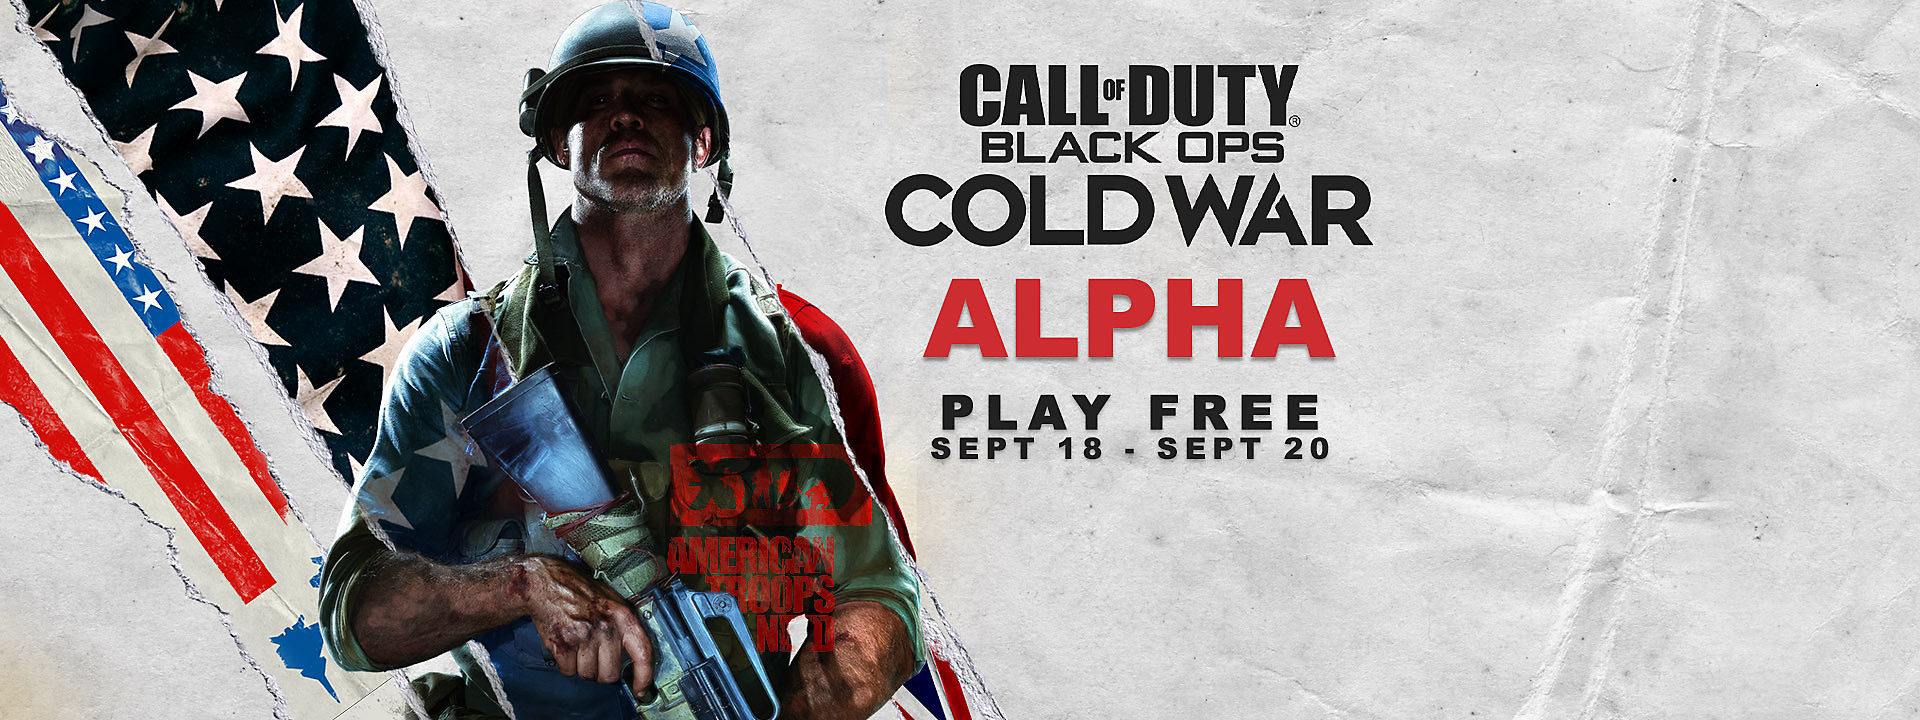 Call of Duty: Black Ops Cold War - Join the Multiplayer Alpha